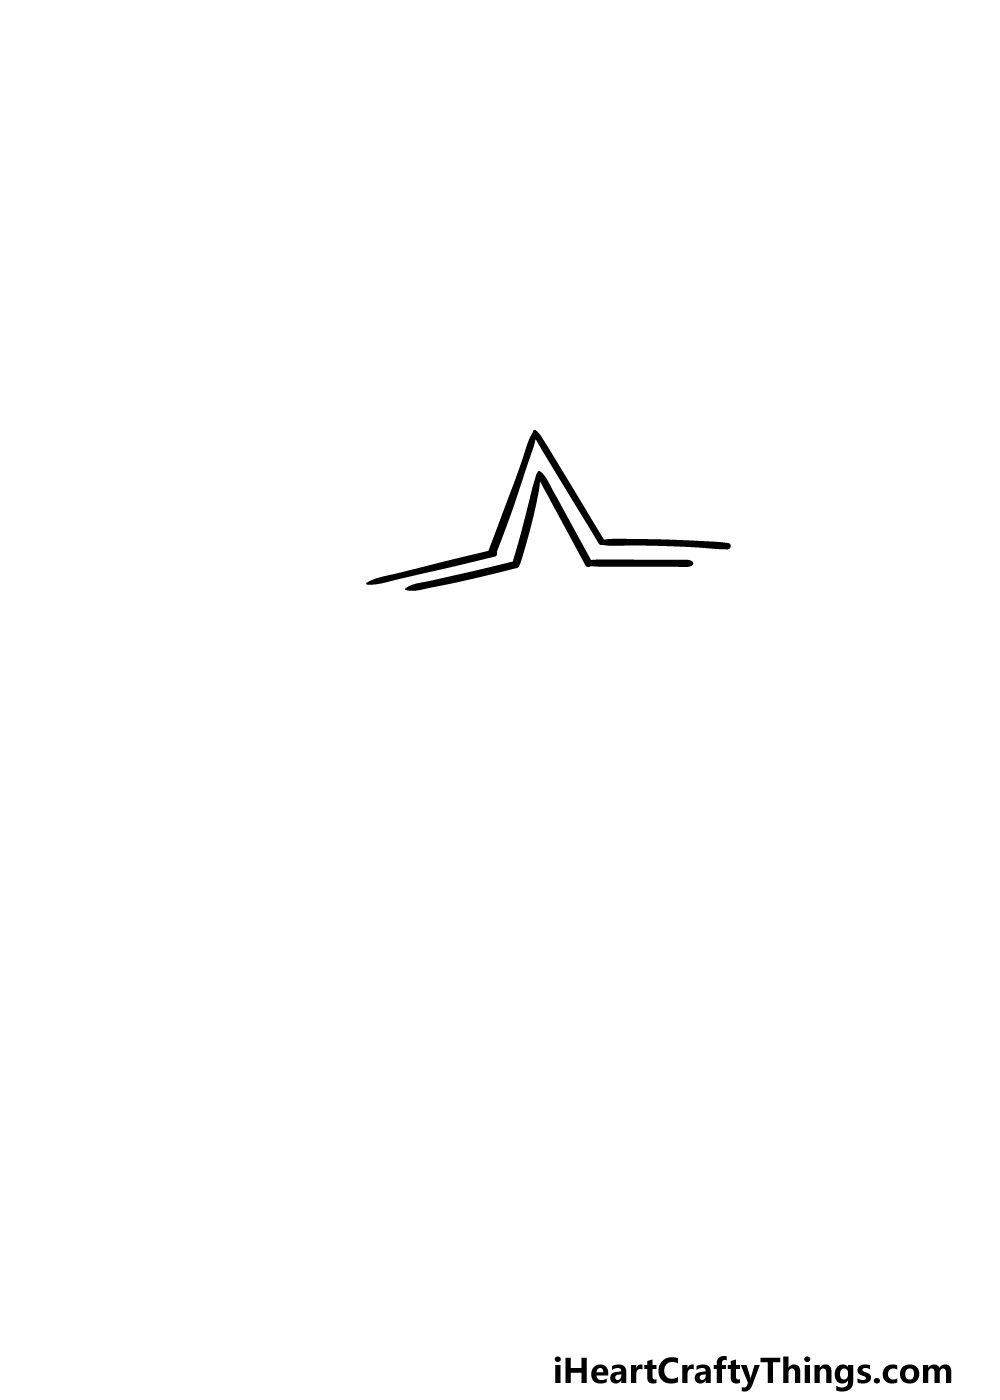 drawing a Shooting Star step 1